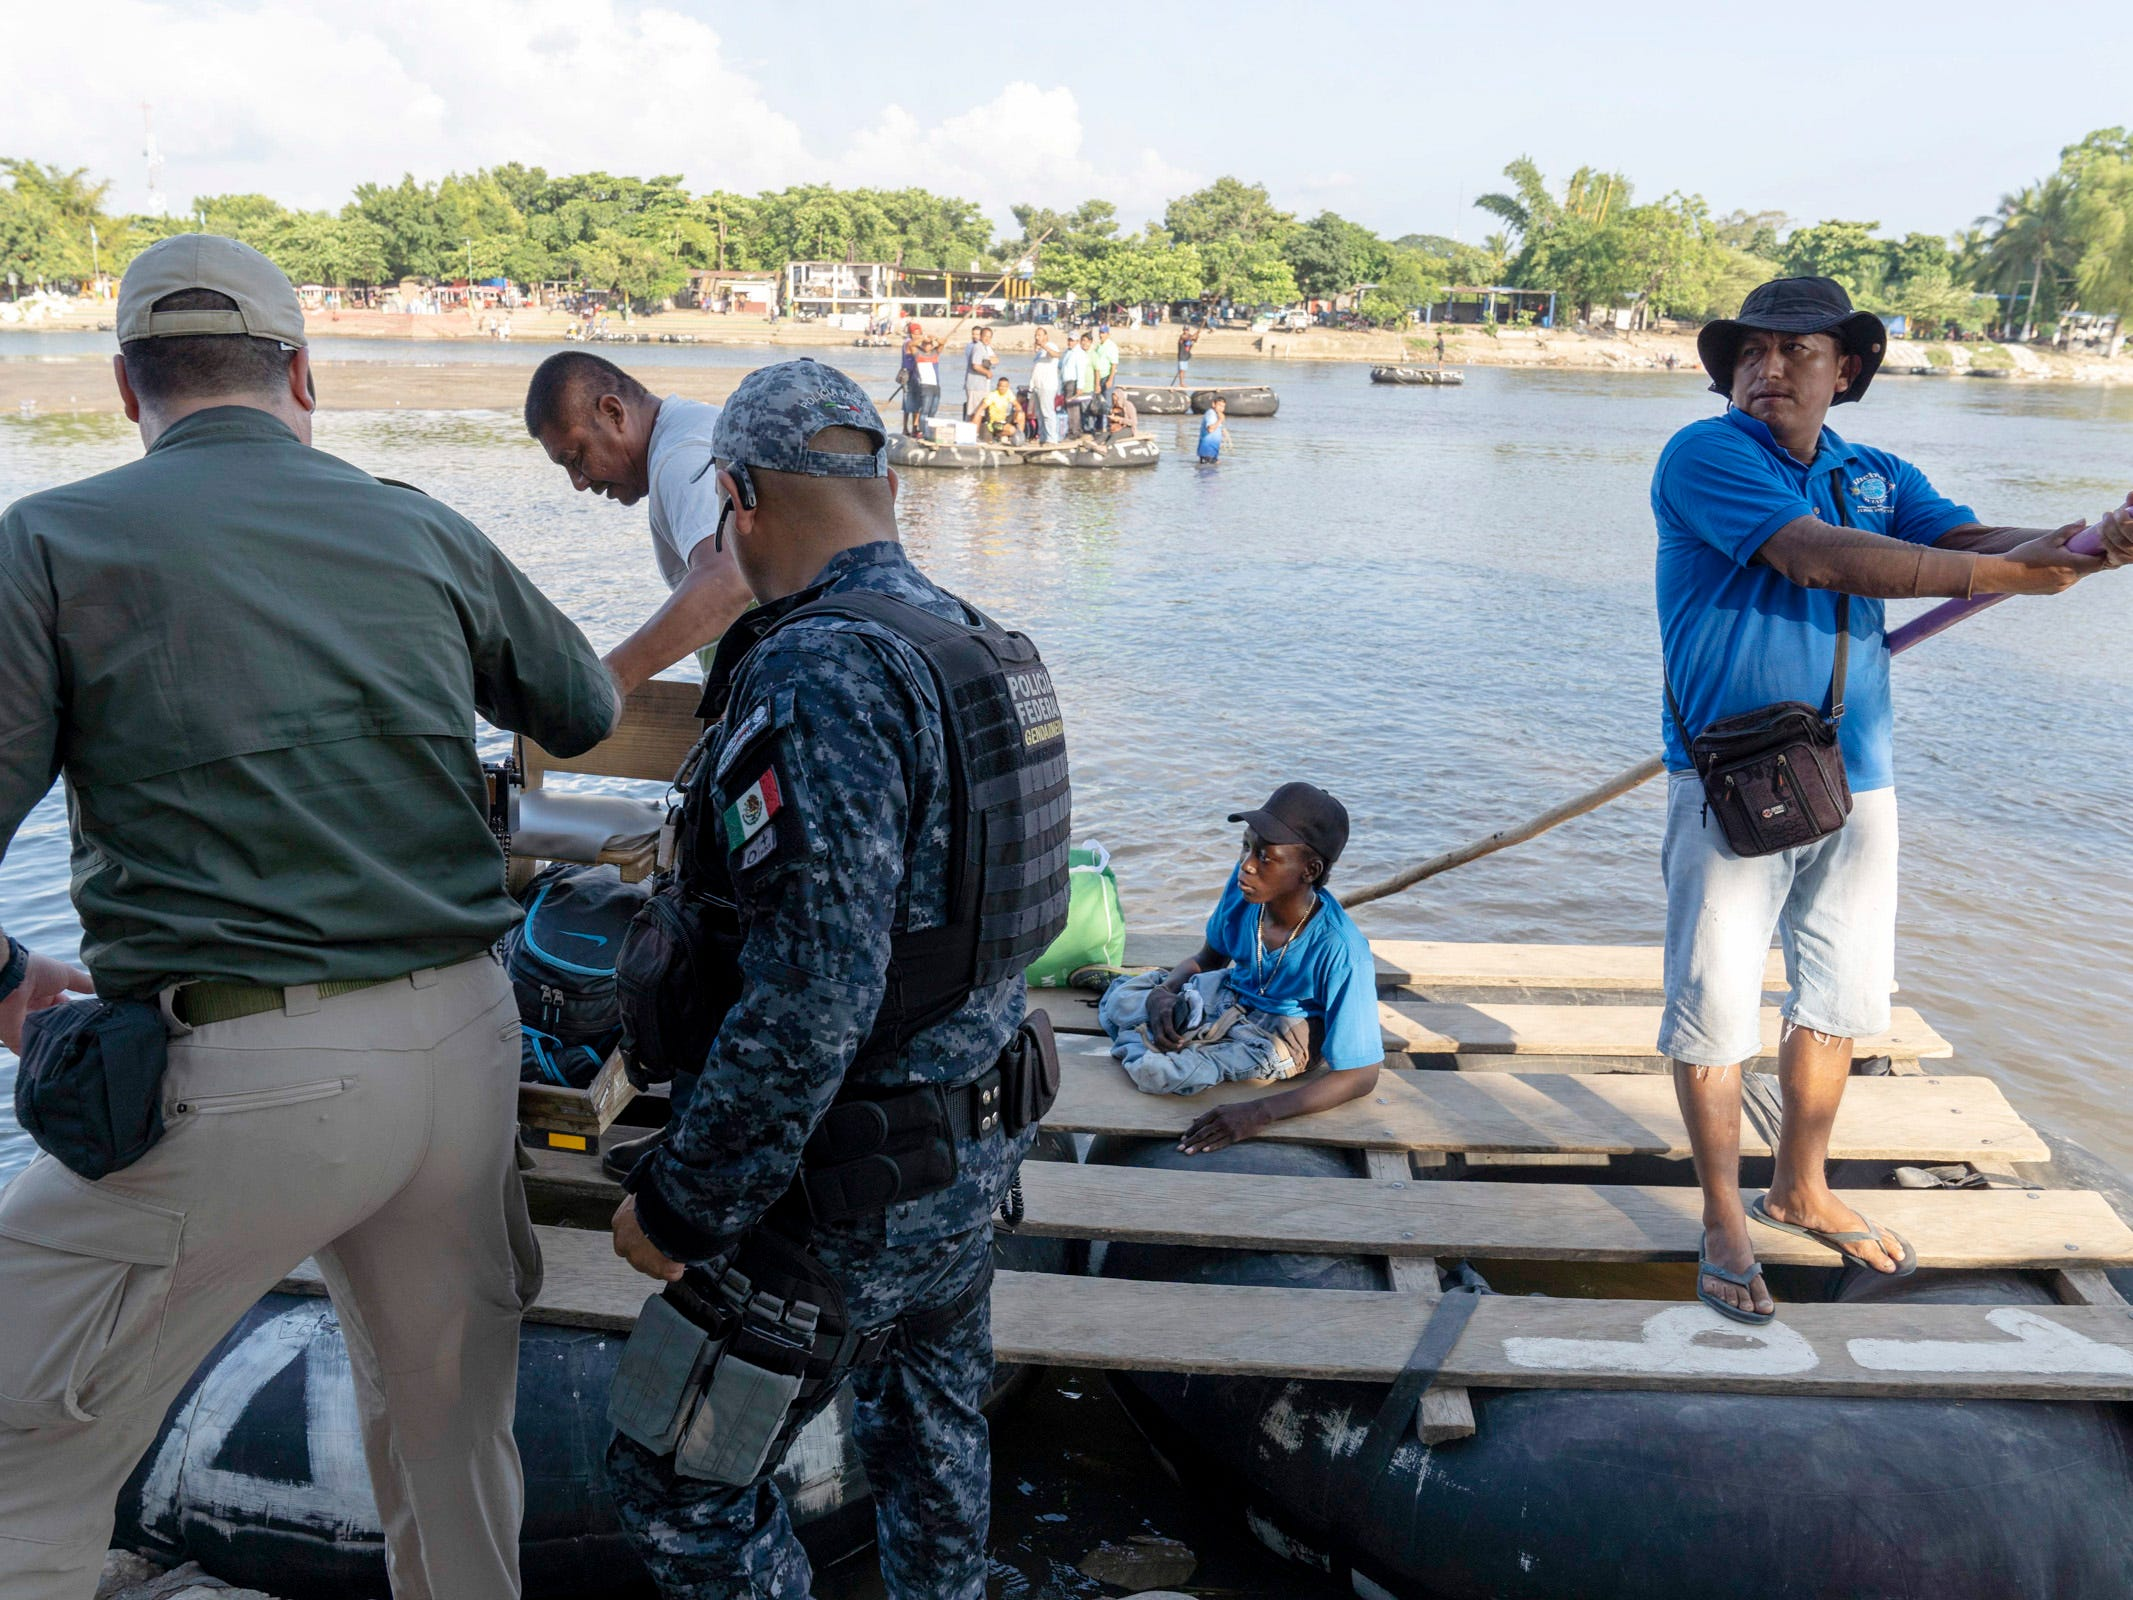 Mexican Federal Police and Immigration officers check identification of the border crossers from Guatemala, who were crossing in a raft at Cuidad Hidalgo, Mexico on Oct. 25, 2018.